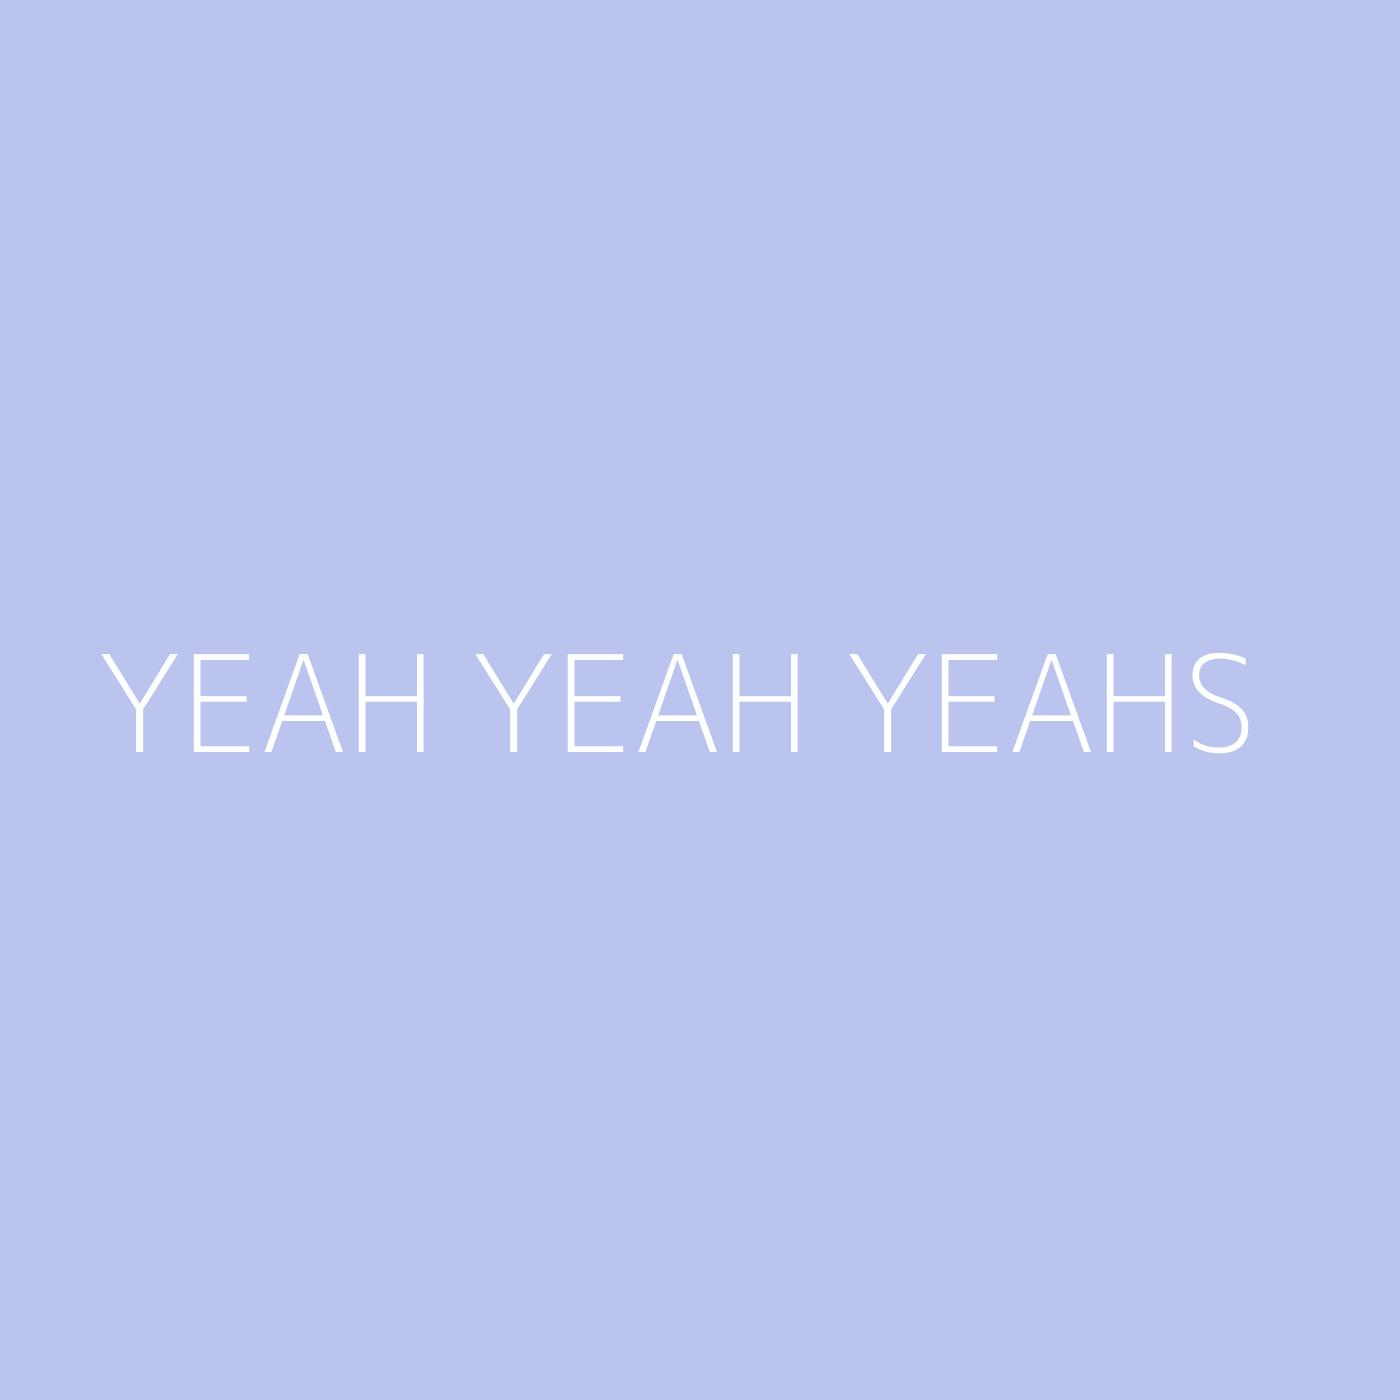 Yeah Yeah Yeahs Playlist Artwork